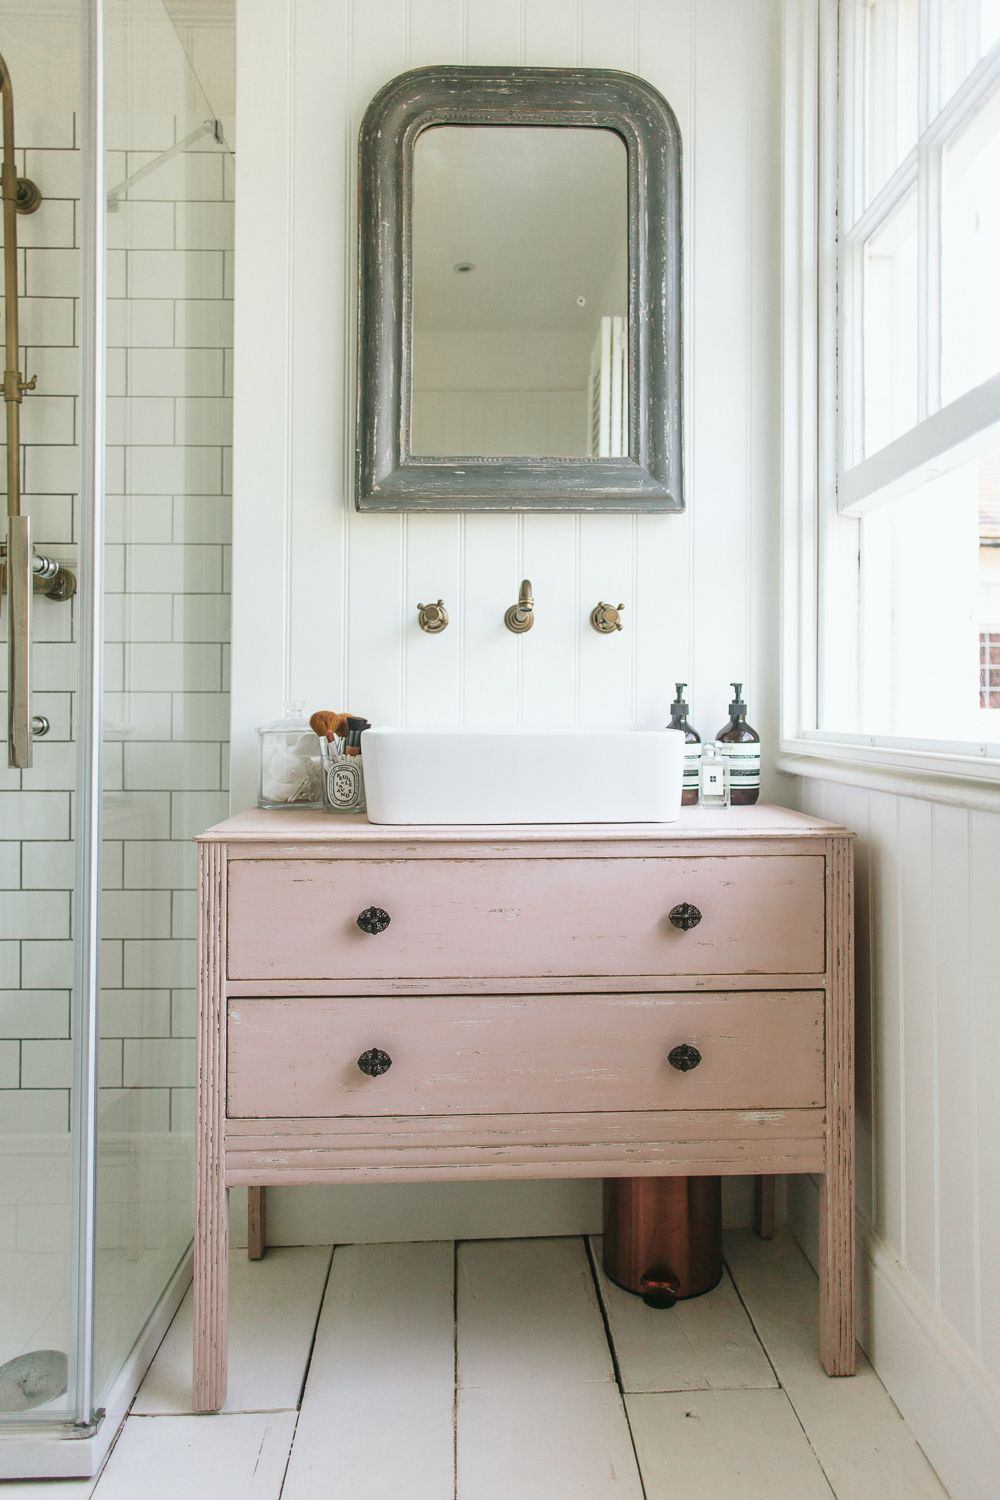 Rebecca rvk_loves Bathroom Tour | For the Home / Bed + Bath ...